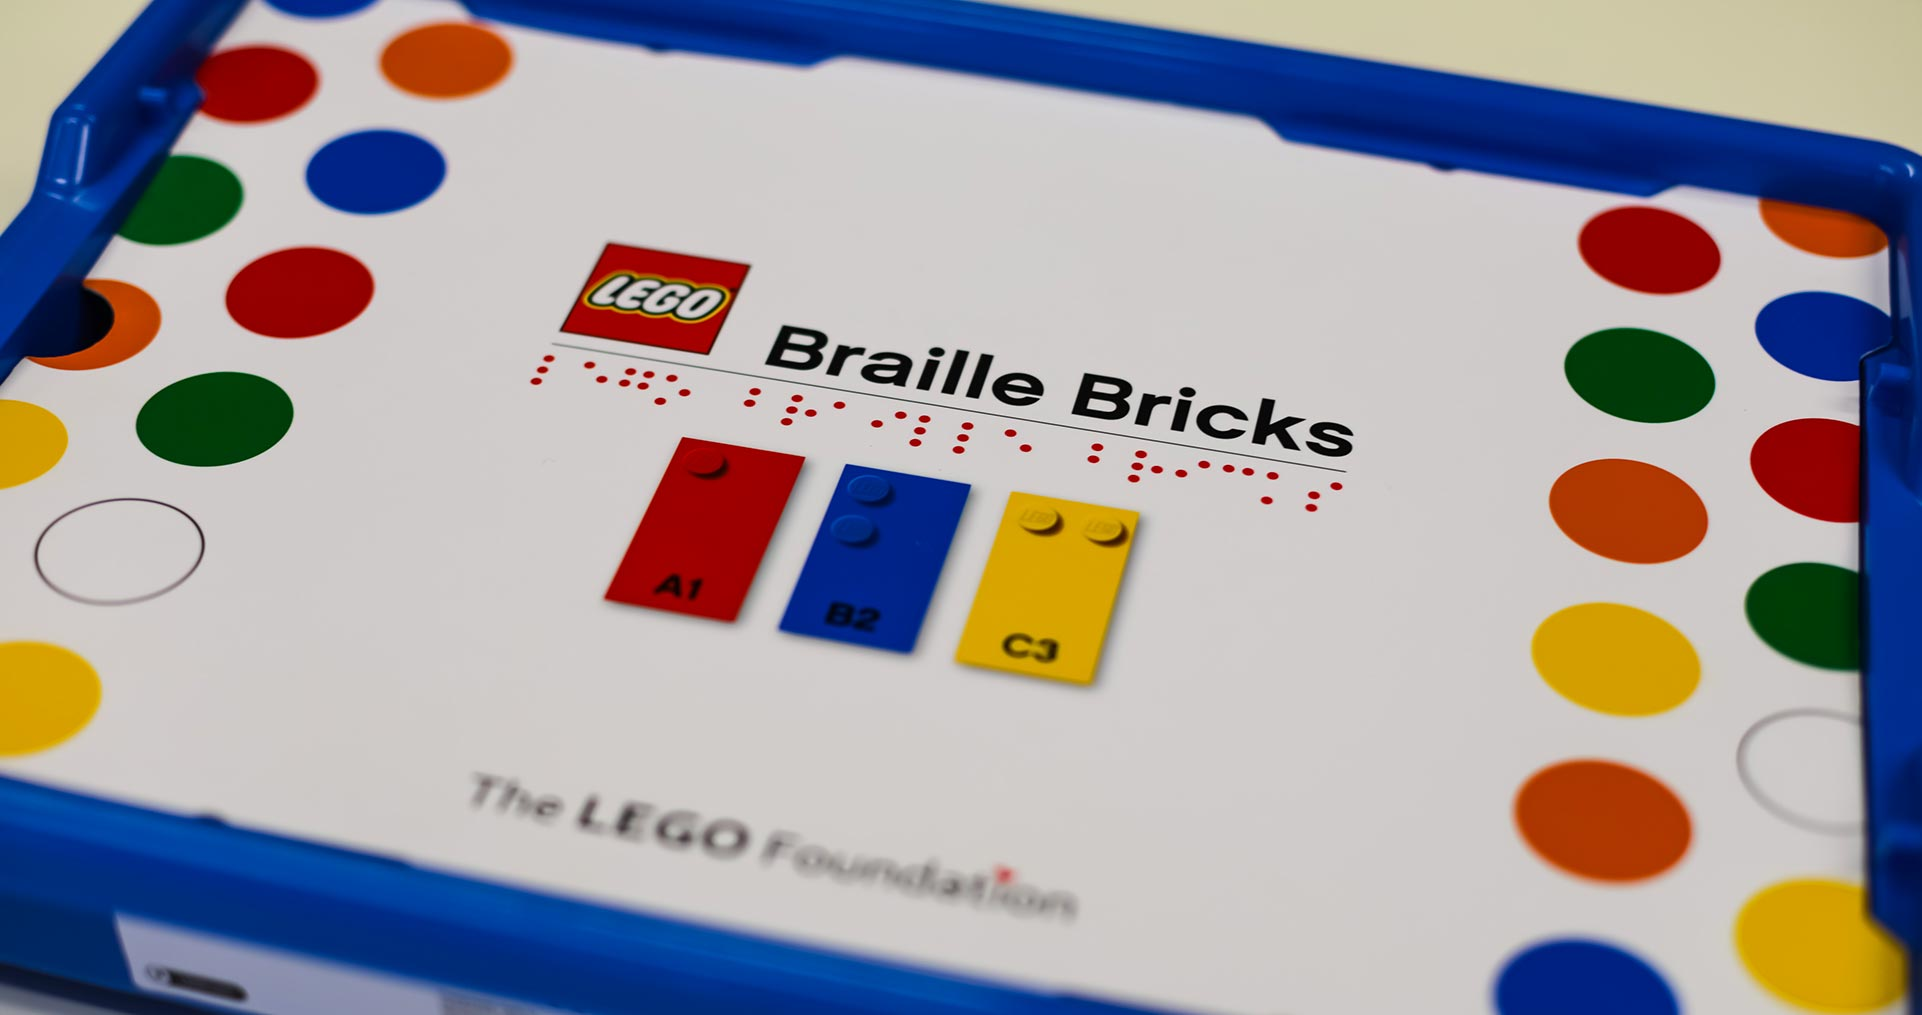 Image of the new LEGO Braille Bricks box